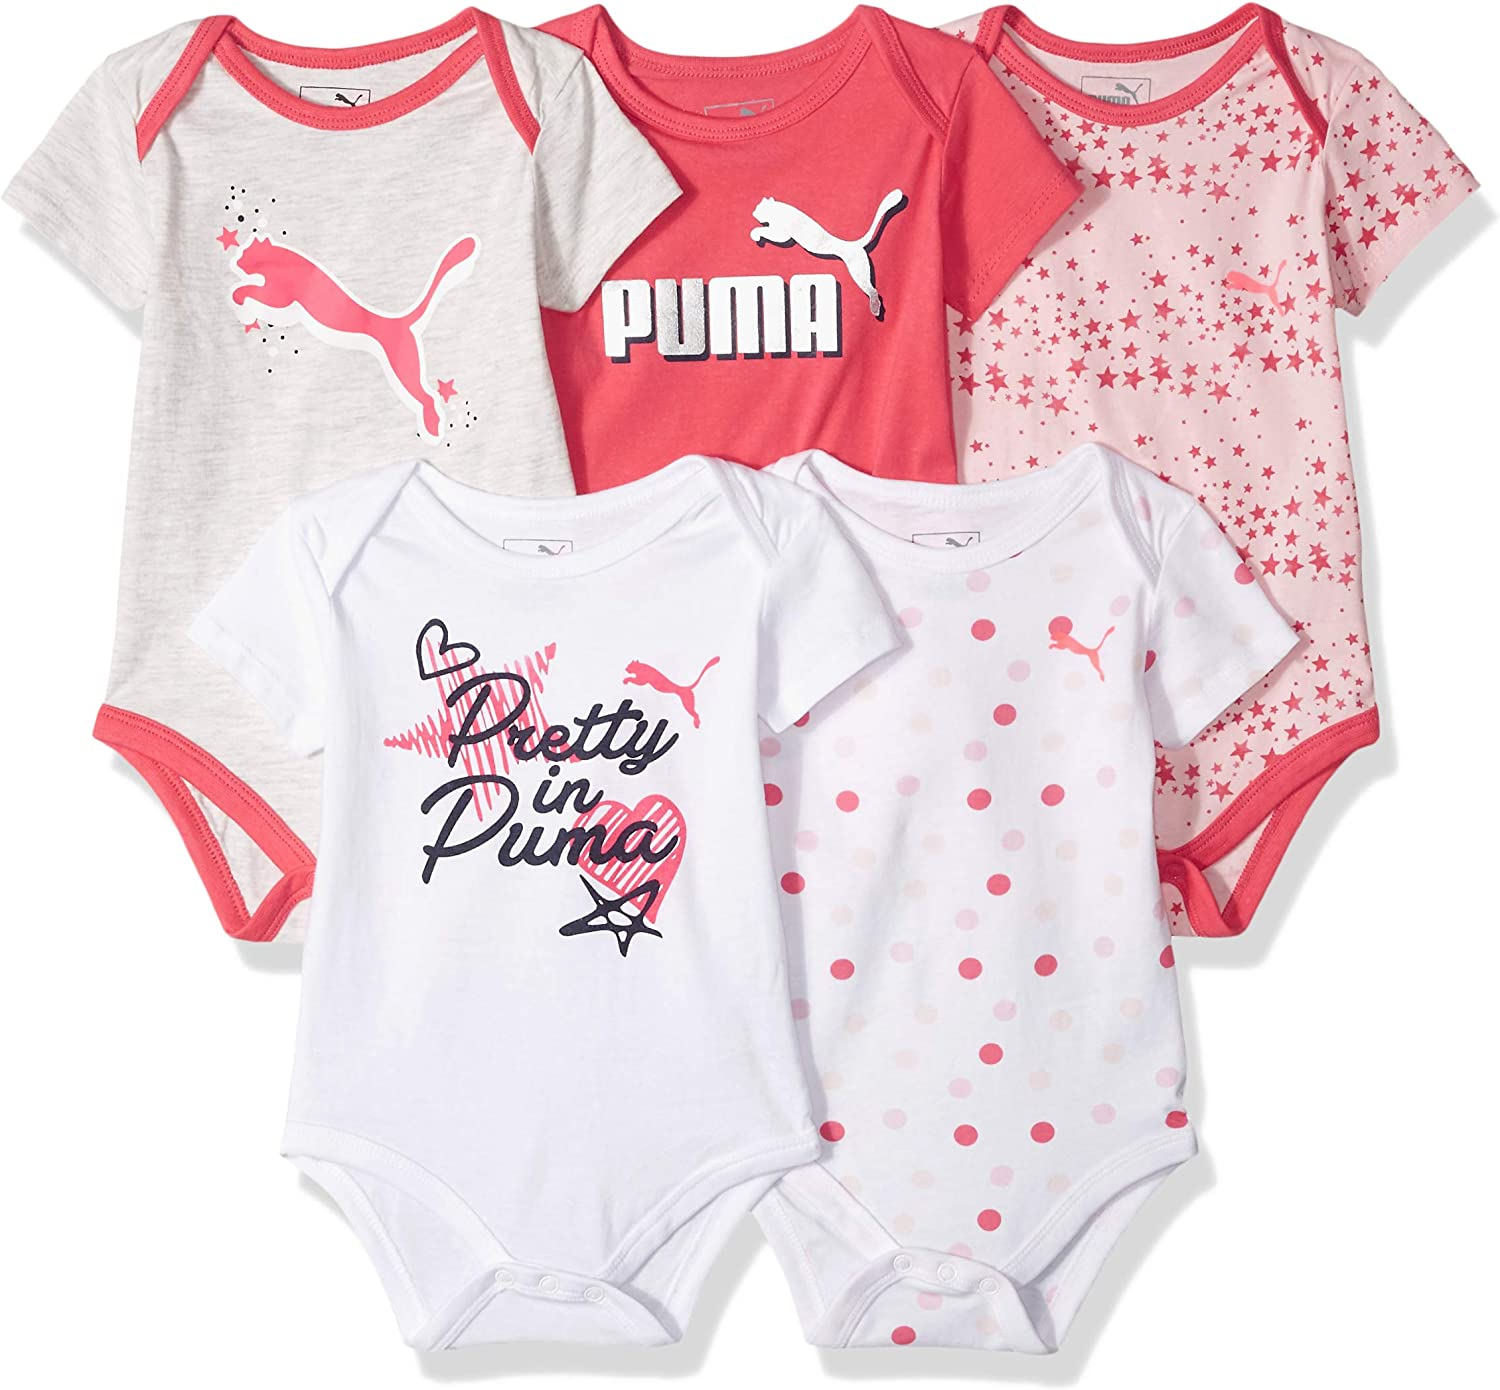 Baby Girl/'s Outfit 5 piece Set by Puma Pink Glo